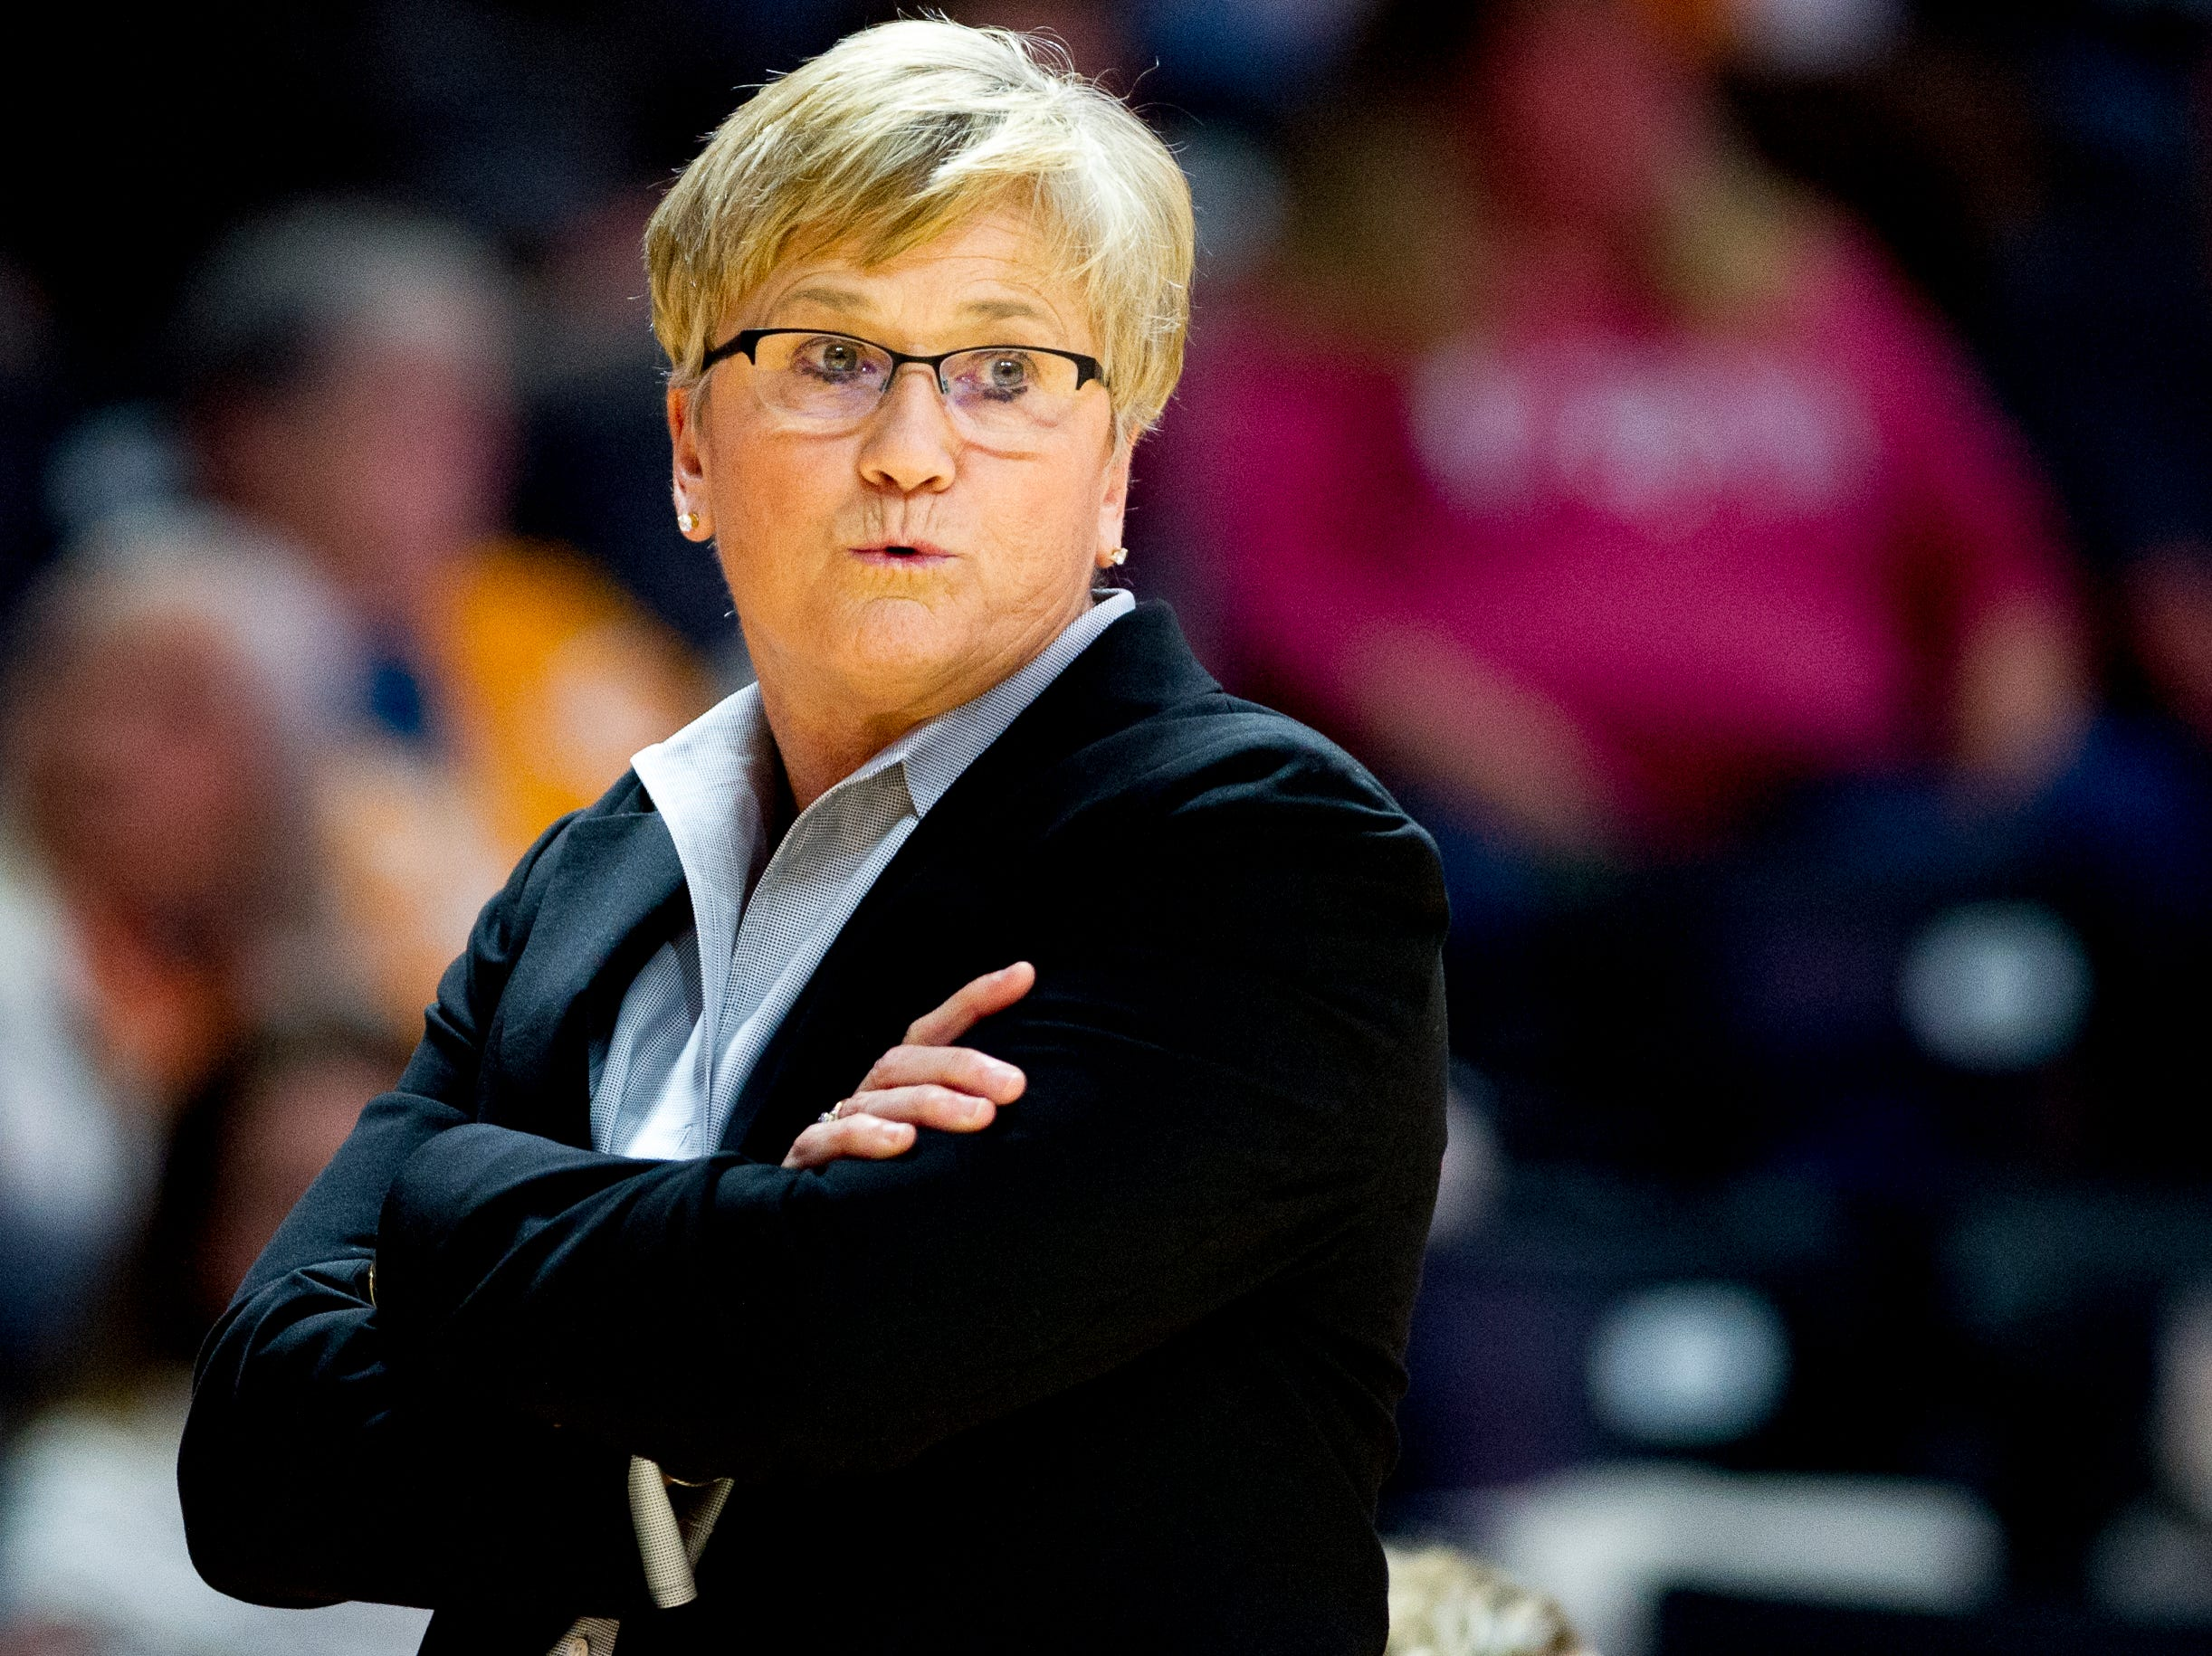 Tennessee Head Coach Holly Warlick calls from the sideline during a game between the Tennessee Lady Vols and Murray State at Thompson-Boling Arena in Knoxville, Tennessee on Friday, December 28, 2018.